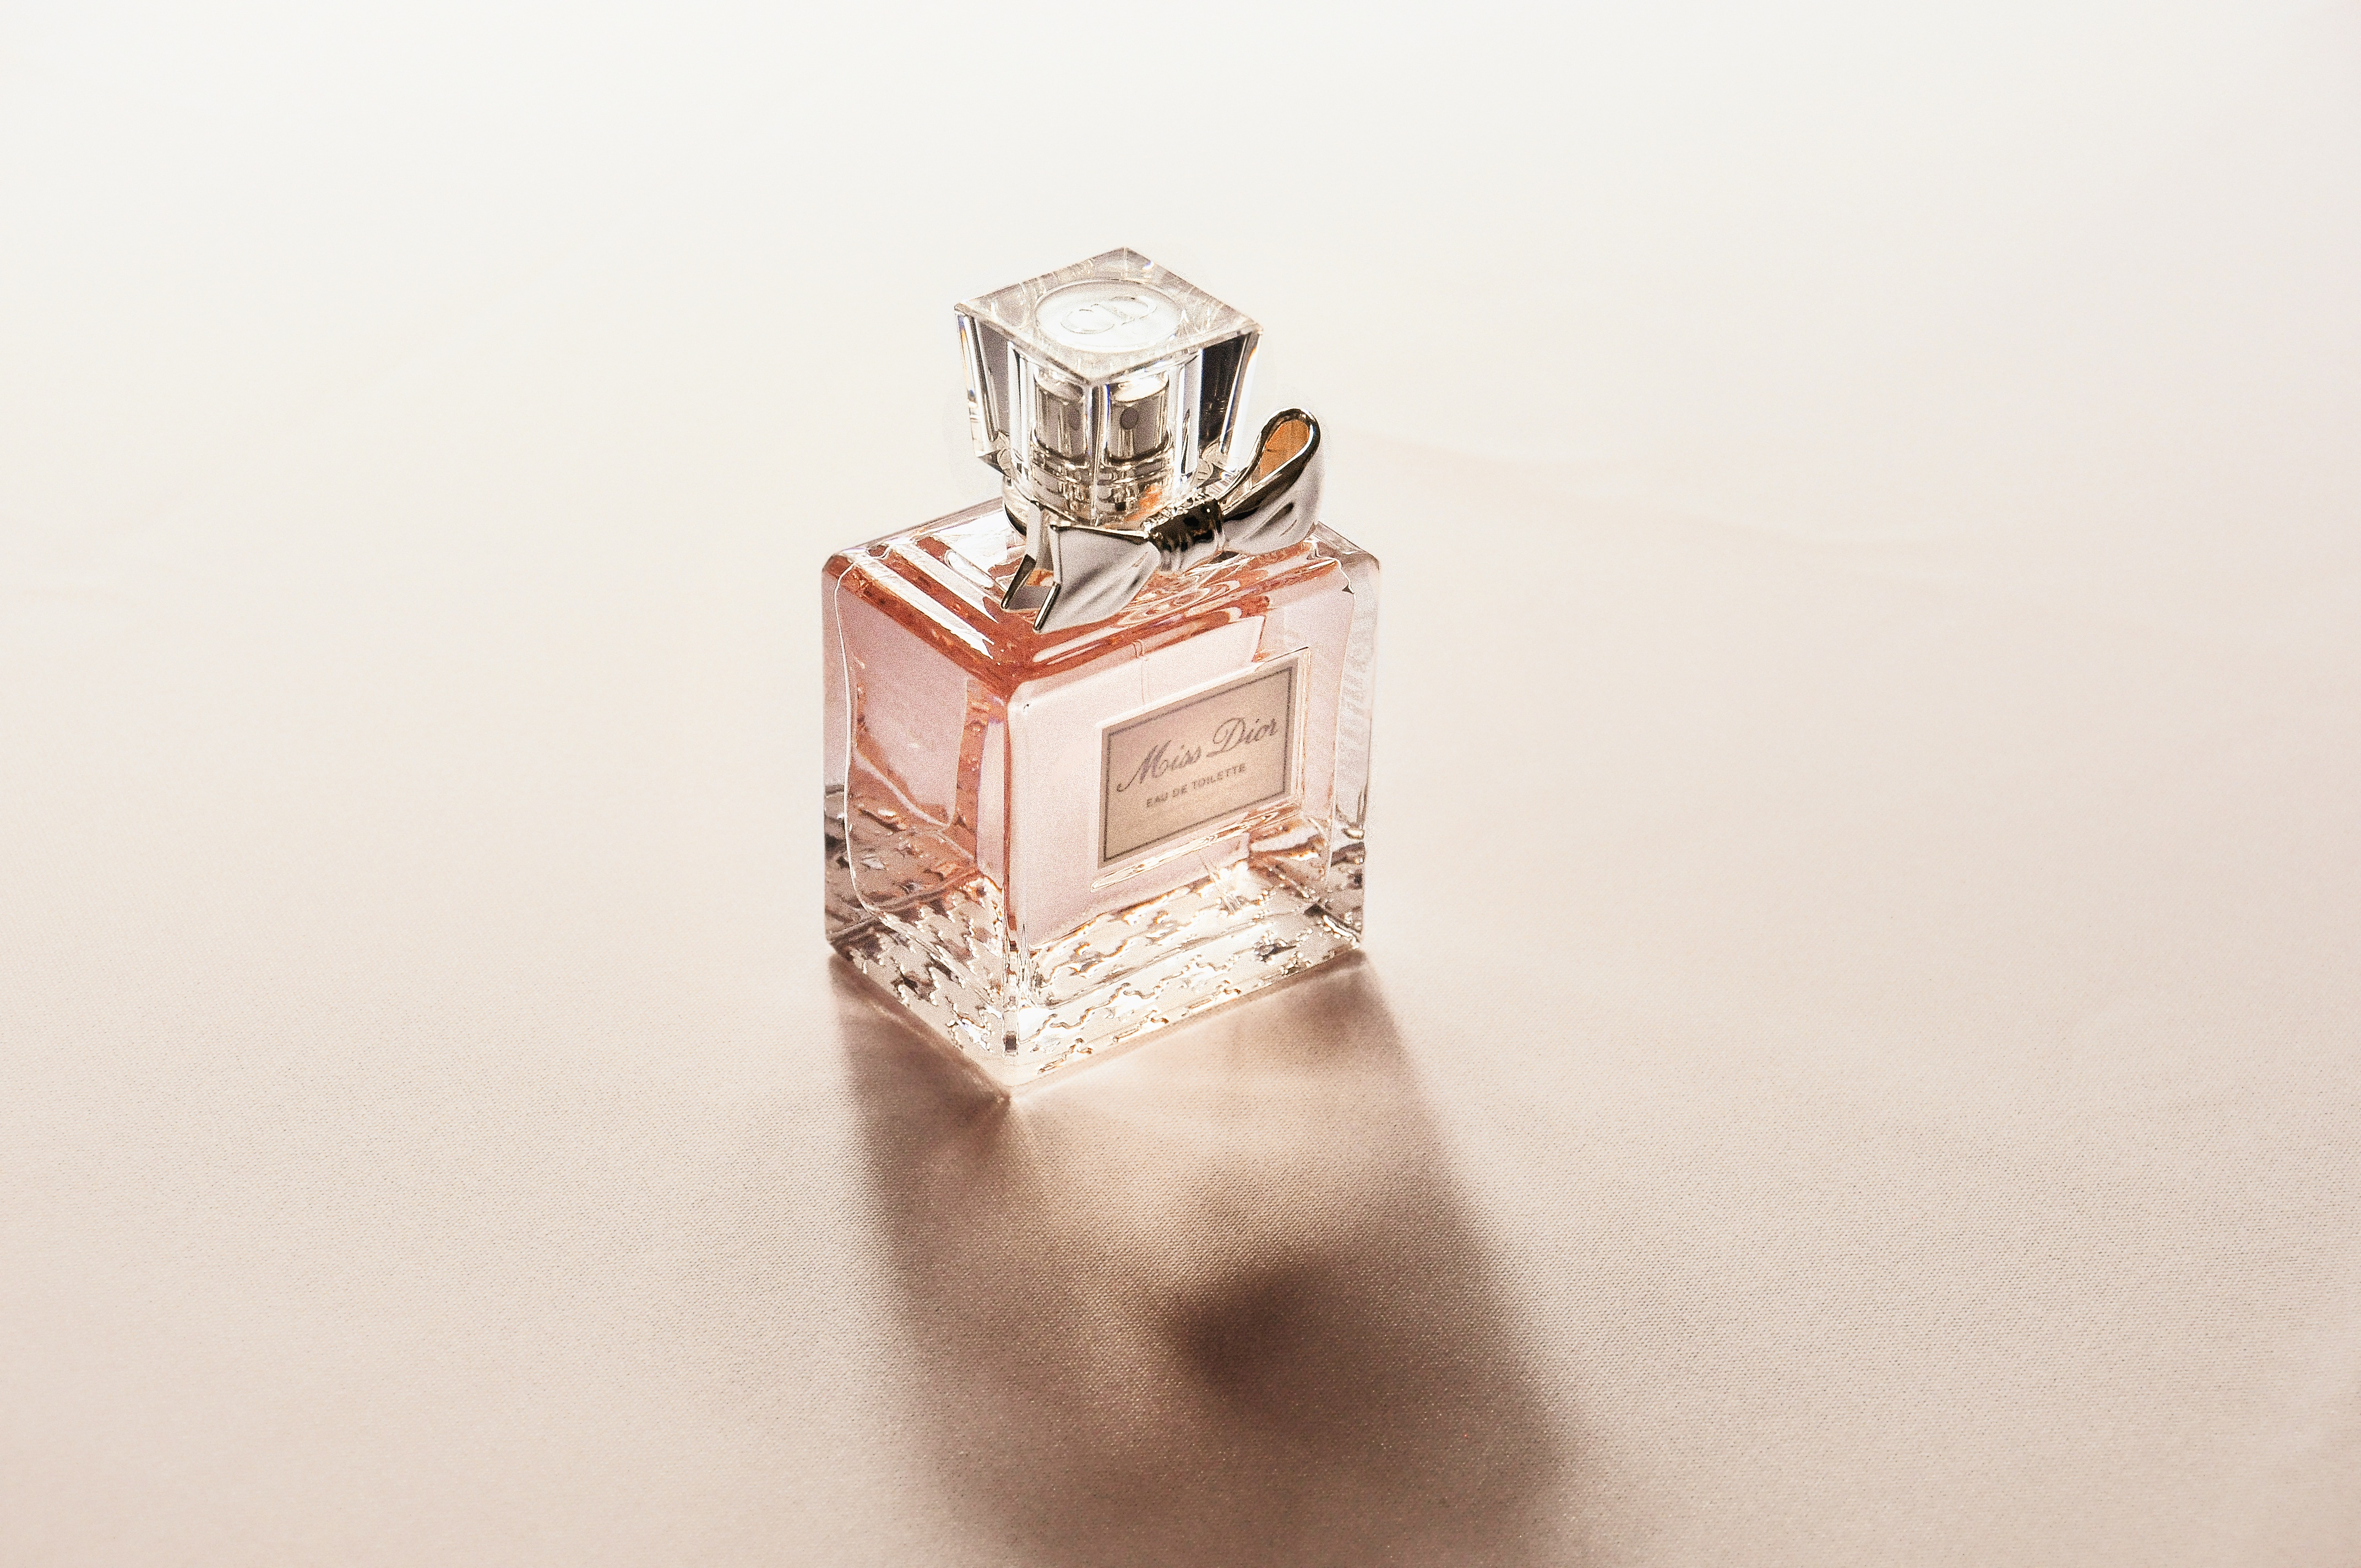 Dior, Brand, Cologne, Fragrance, French, HQ Photo